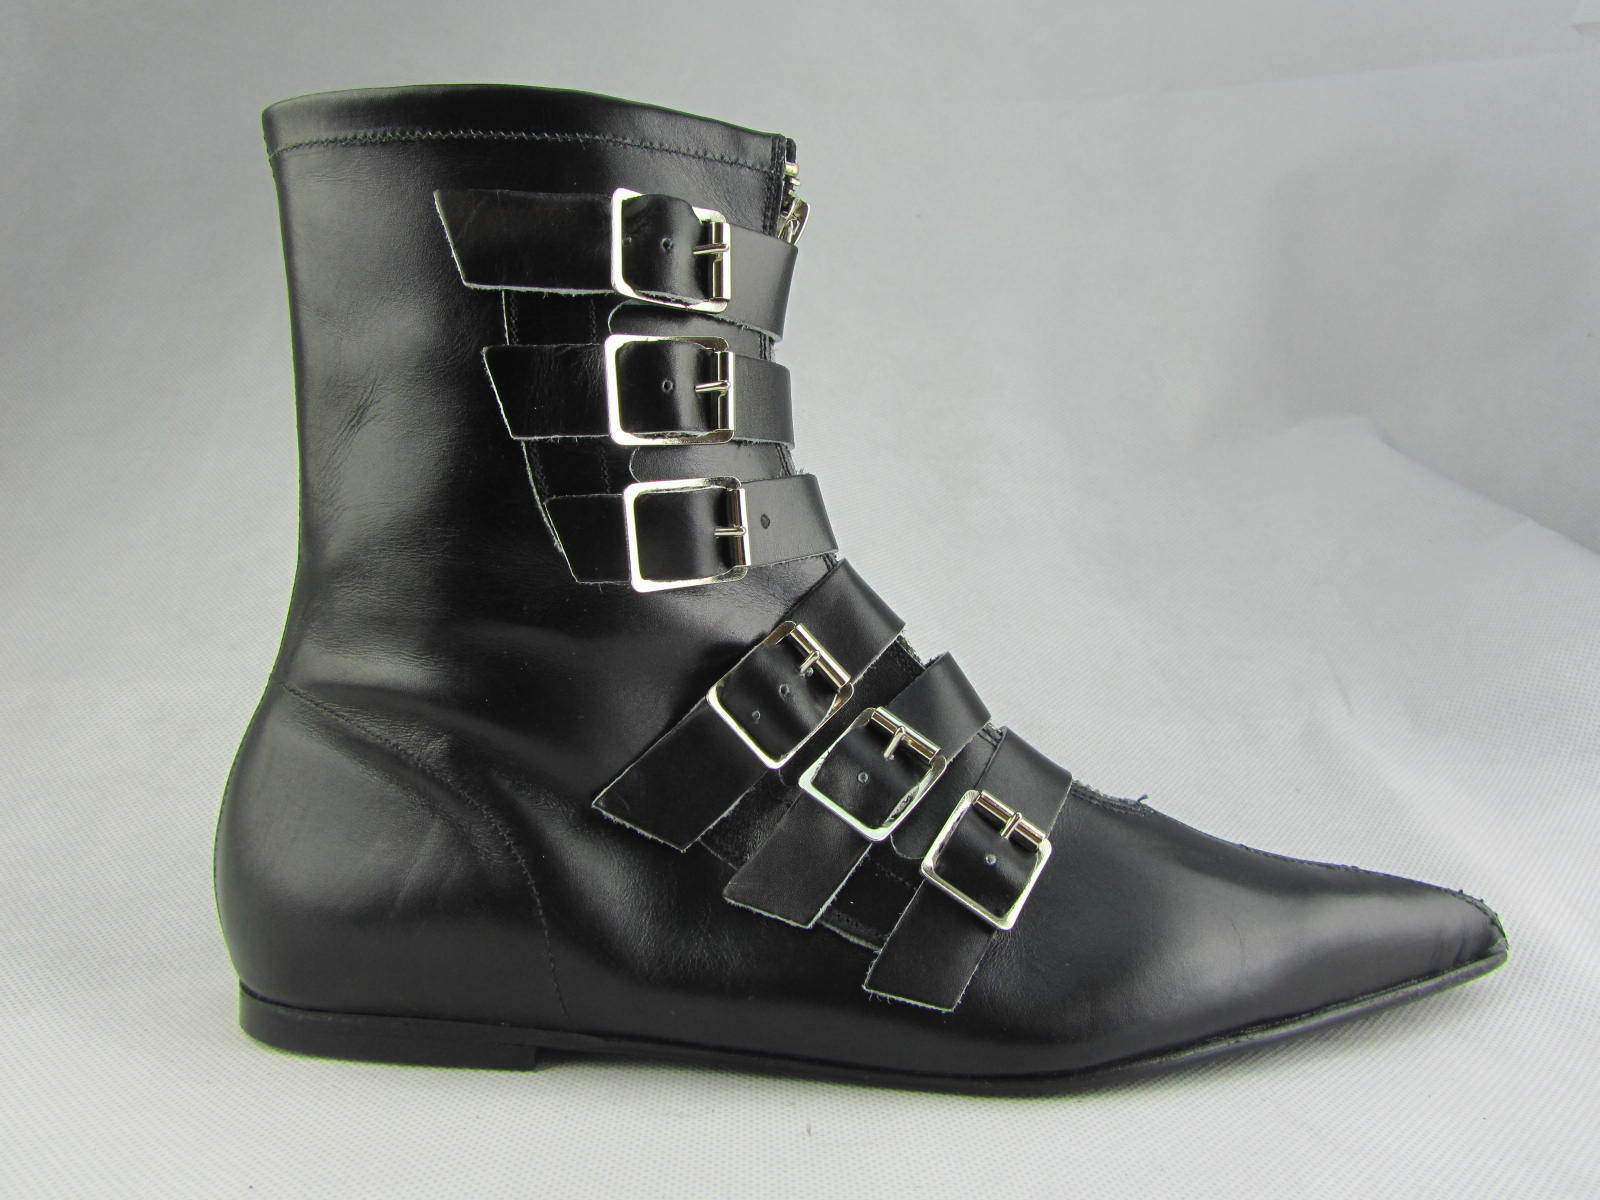 Retro New Winkle Winkle New Picker Goth Pointed Ladies 6 Strap Black Leather Boots Rock 7727b7